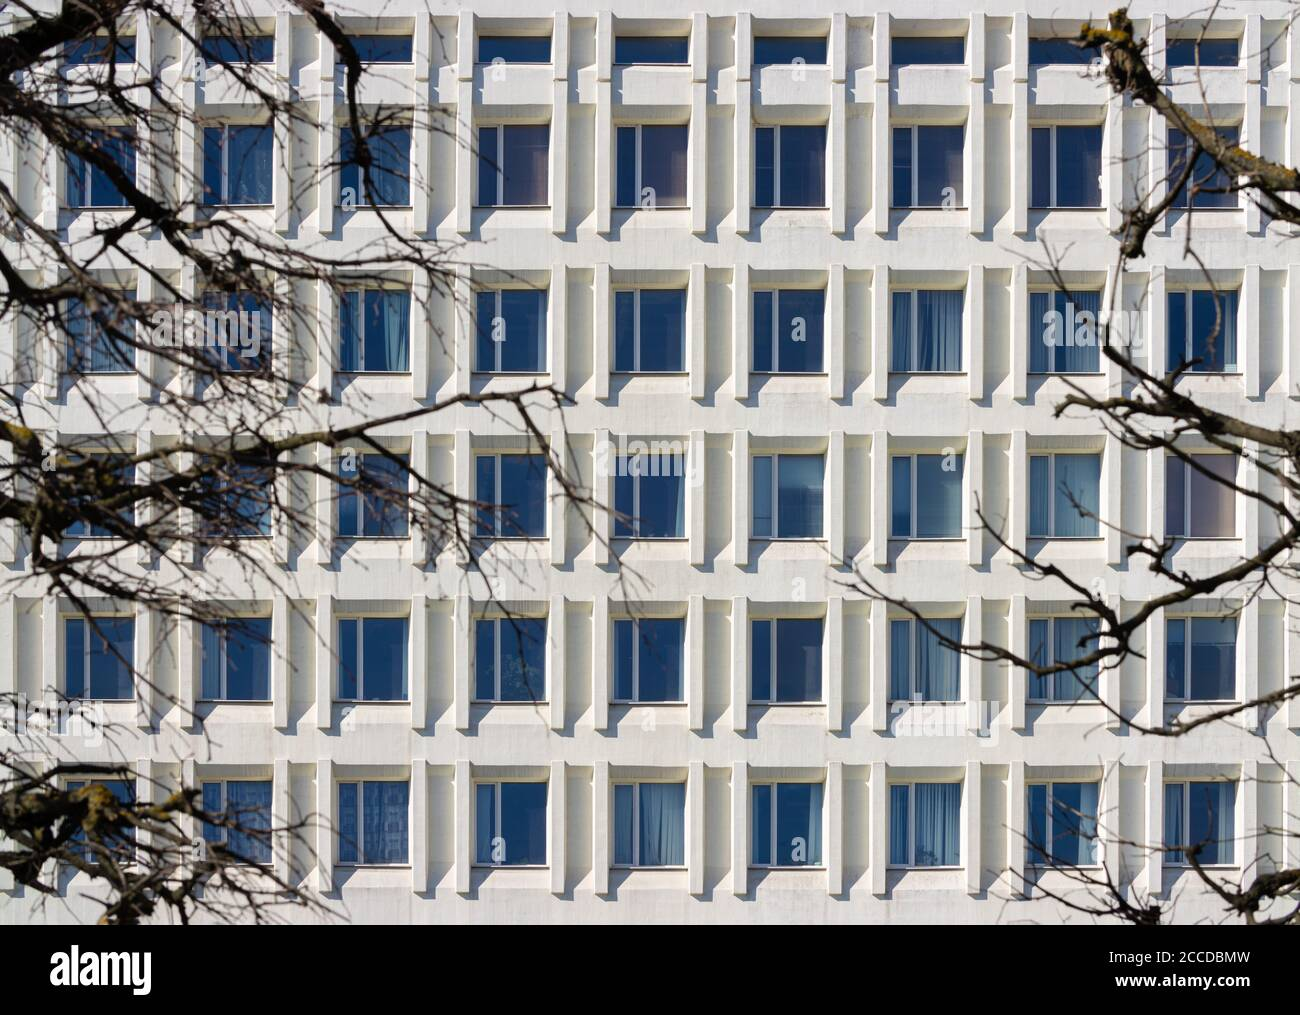 Elements of architecture of buildings, windows texture, arches, frames and niches. On the streets in Minsk, public places. Stock Photo